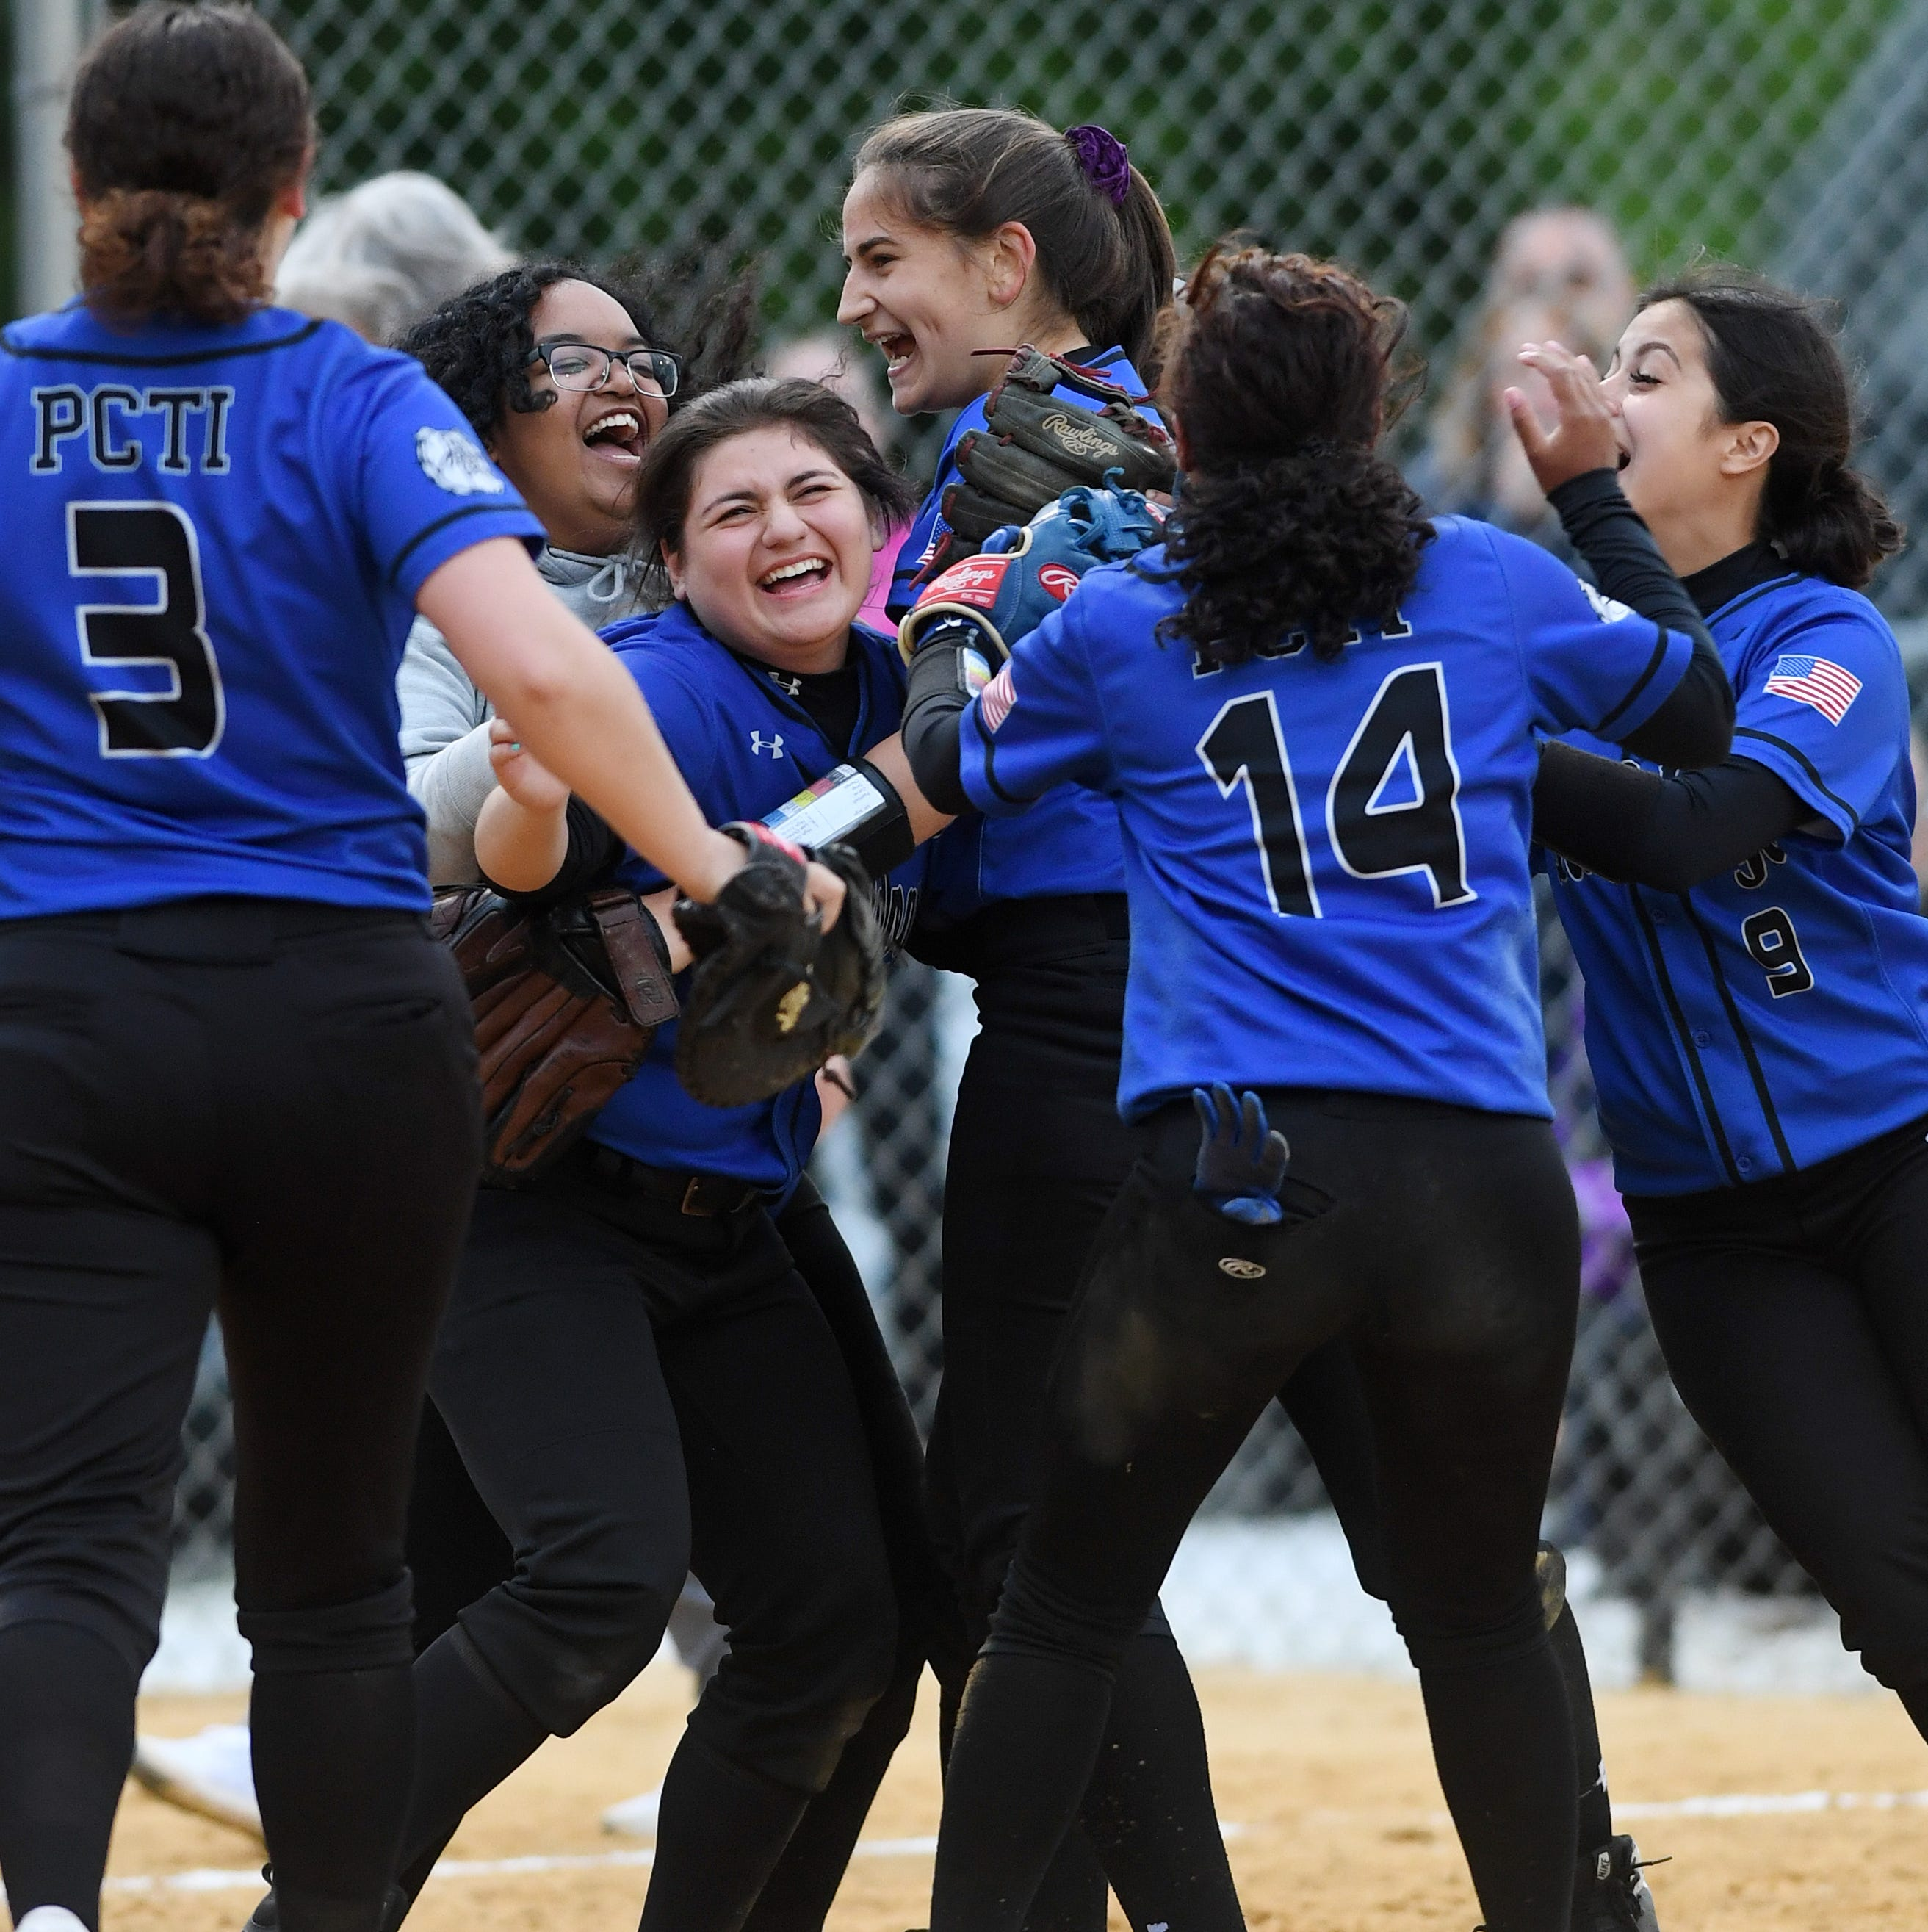 Softball: Passaic Tech stops DePaul's streak; West Milford downs unbeaten Passaic Valley